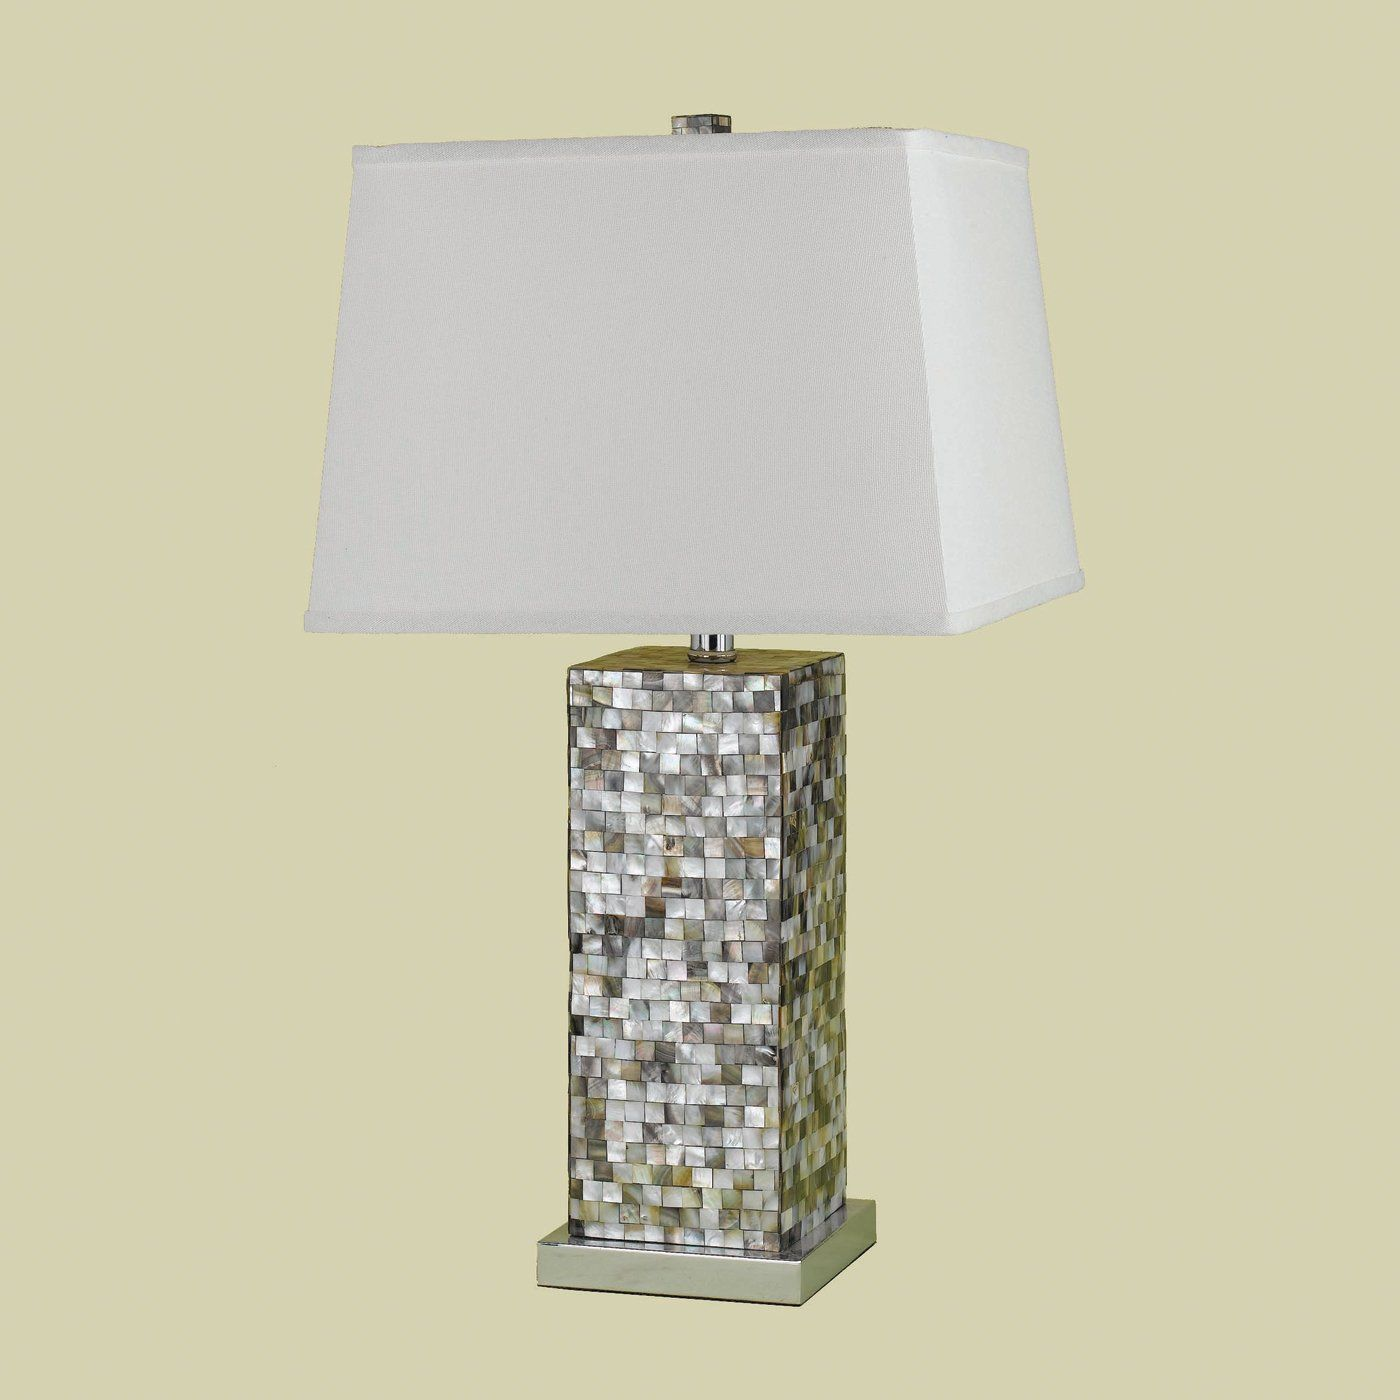 Candice olson 6671 tl candice olson sahara table lamp chrome candice olson 6671 tl candice olson sahara table lamp chrome geotapseo Image collections